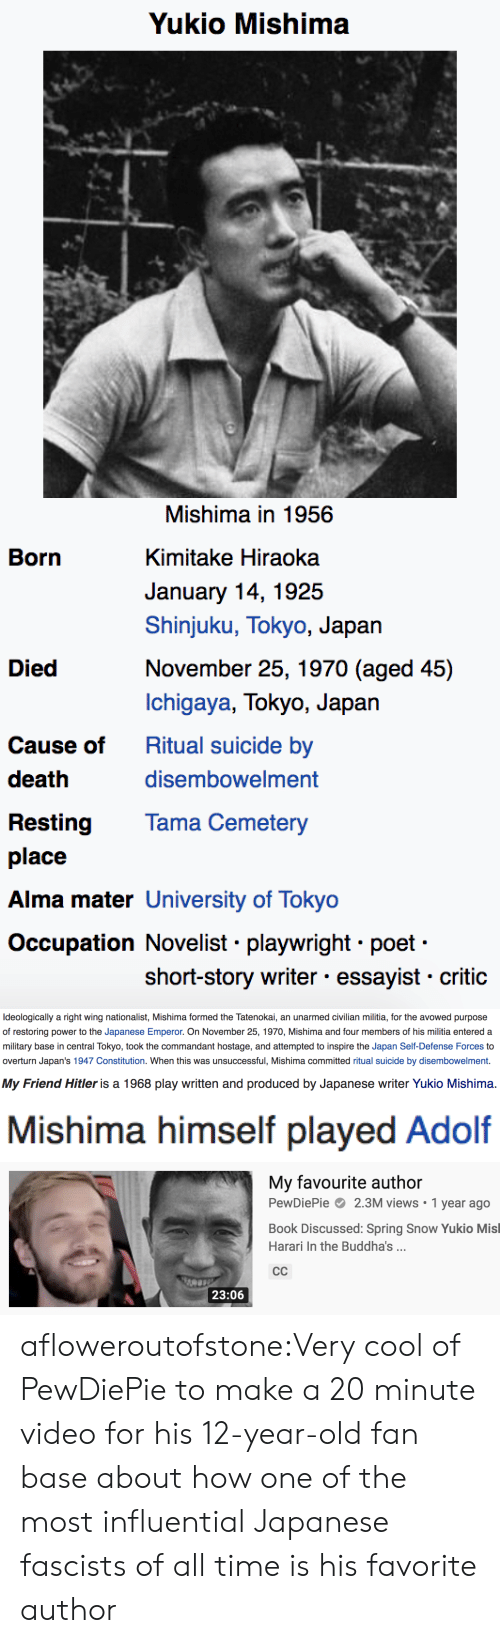 Militia, Target, and Tumblr: Yukio Mishima  Mishima in 1956  Born  Kimitake Hiraoka  January 14, 1925  Shinjuku, Tokyo, Japan  November 25, 1970 (aged 45)  Died  Ichigaya, Tokyo, Japan  Ritual suicide by  Cause of  death  disembowelment  Tama Cemetery  Resting  place  Alma mater University of Tokyo  Occupation Novelist playwright poet  short-story writer essayist critic   Ideologically a right wing nationalist, Mishima formed the Tatenokai, an unarmed civilian militia, for the avowed purpose  of restoring power to the Japanese Emperor. On November 25, 1970, Mishima and four members of his militia entered a  military base in central Tokyo, took the commandant hostage, and attempted to inspire the Japan Self-Defense Forces to  overturn Japan's 1947 Constitution. When this was unsuccessful, Mishima committed ritual suicide by disembowelment.   My Friend Hitler is a 1968 play written and produced by Japanese writer Yukio Mishima.   Mishima himself played Adolf   My favourite author  PewDiePie 2.3M views 1 year ago  Book Discussed: Spring Snow Yukio Misl  Harari In the Buddha's .  СС  23:06 afloweroutofstone:Very cool of PewDiePie to make a 20 minute video for his 12-year-old fan base about how one of the most influential Japanese fascists of all time is his favorite author